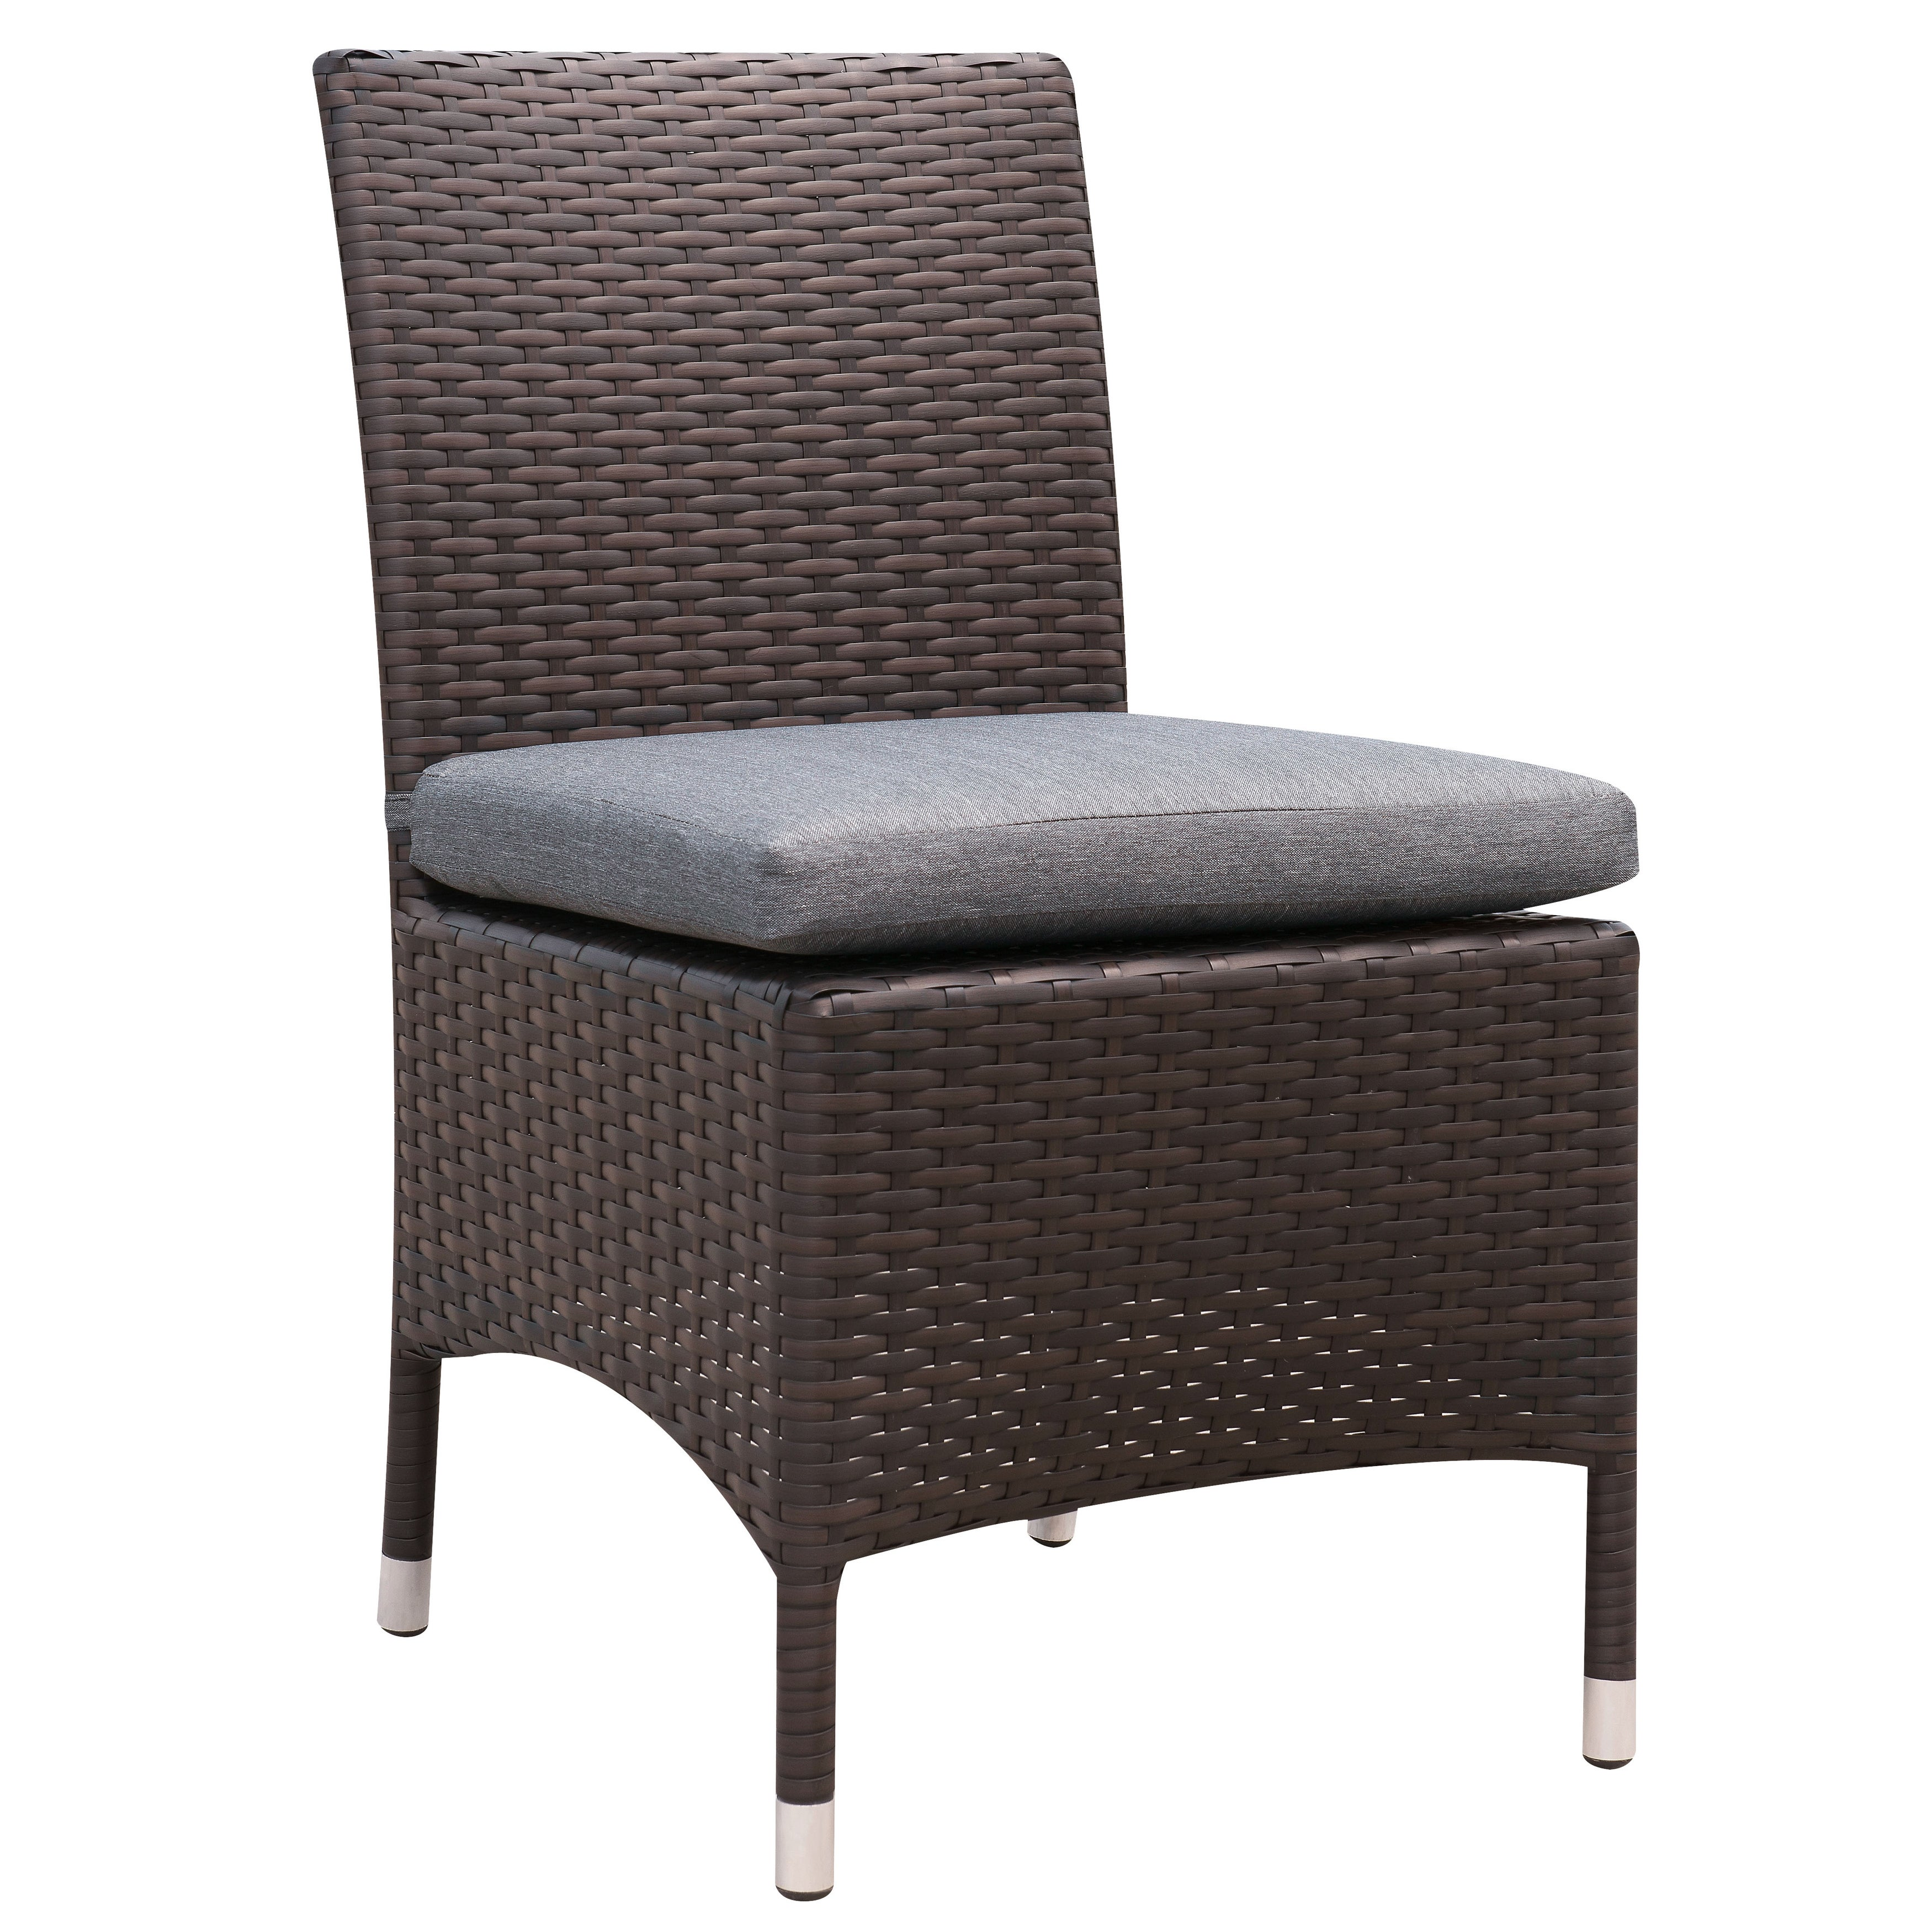 Details About Furniture Of America Mianne Espresso Wicker Inspired Patio